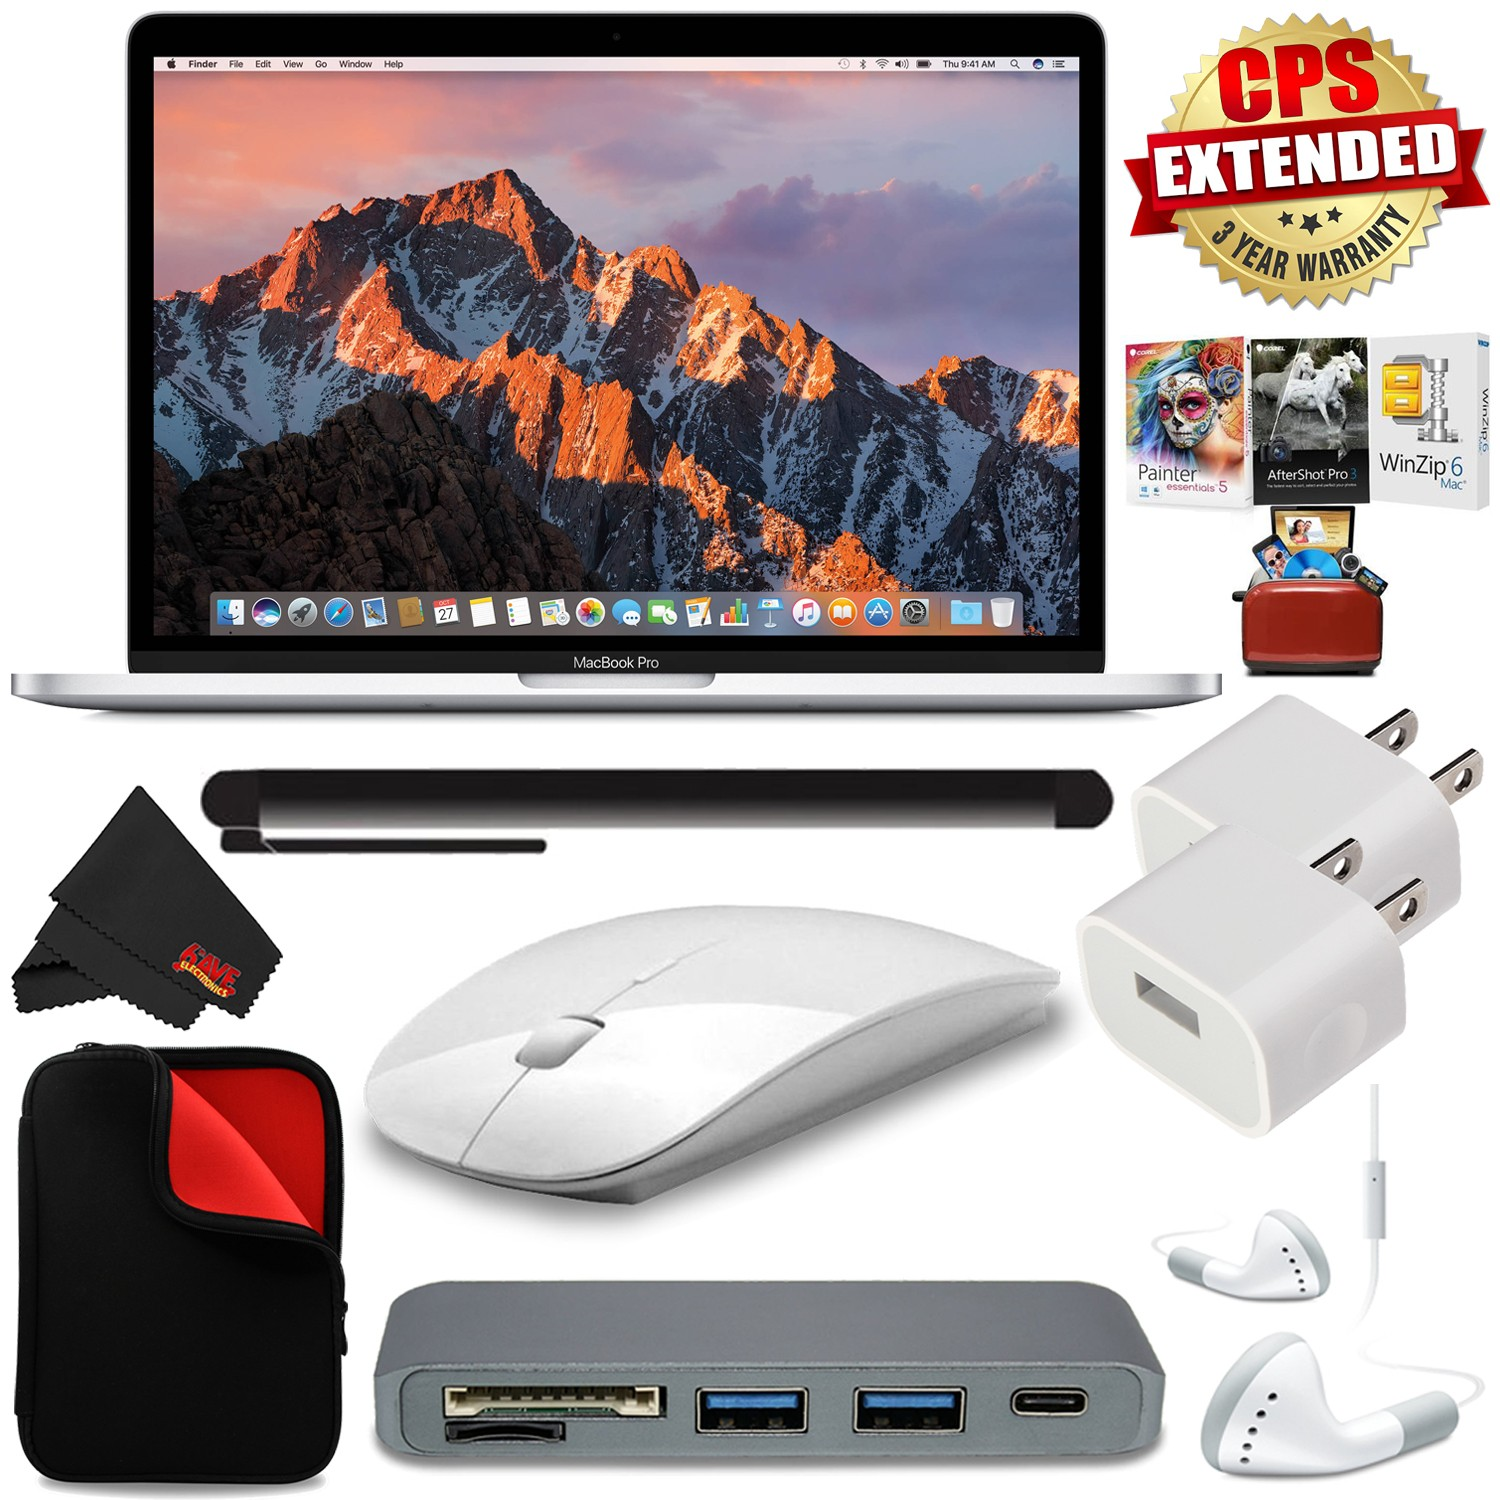 "Apple 13.3"" MacBook Pro (Silver) + MicroFiber Cloth + 2.4 GHz Slim Optical Wireless Bluetooth + Travel USB 5V Wall Charger for iPhone/iPad (White) + Universal Stylus for Tablets Bundle"